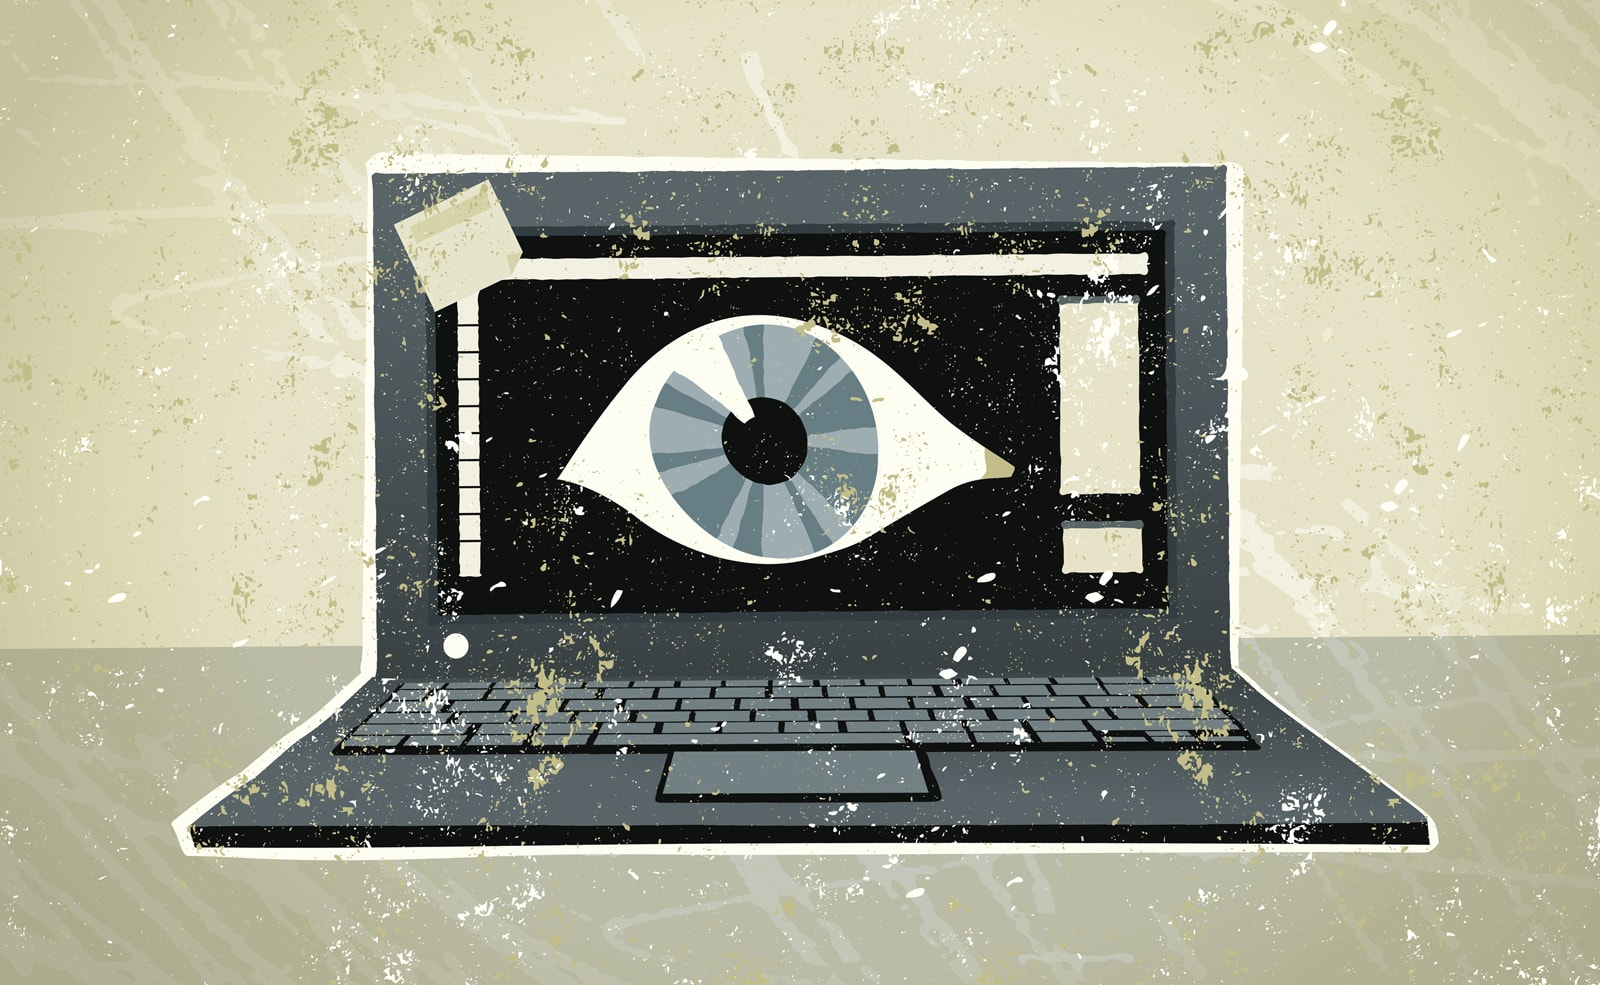 The FBI recommends you cover your laptop's webcam, for good